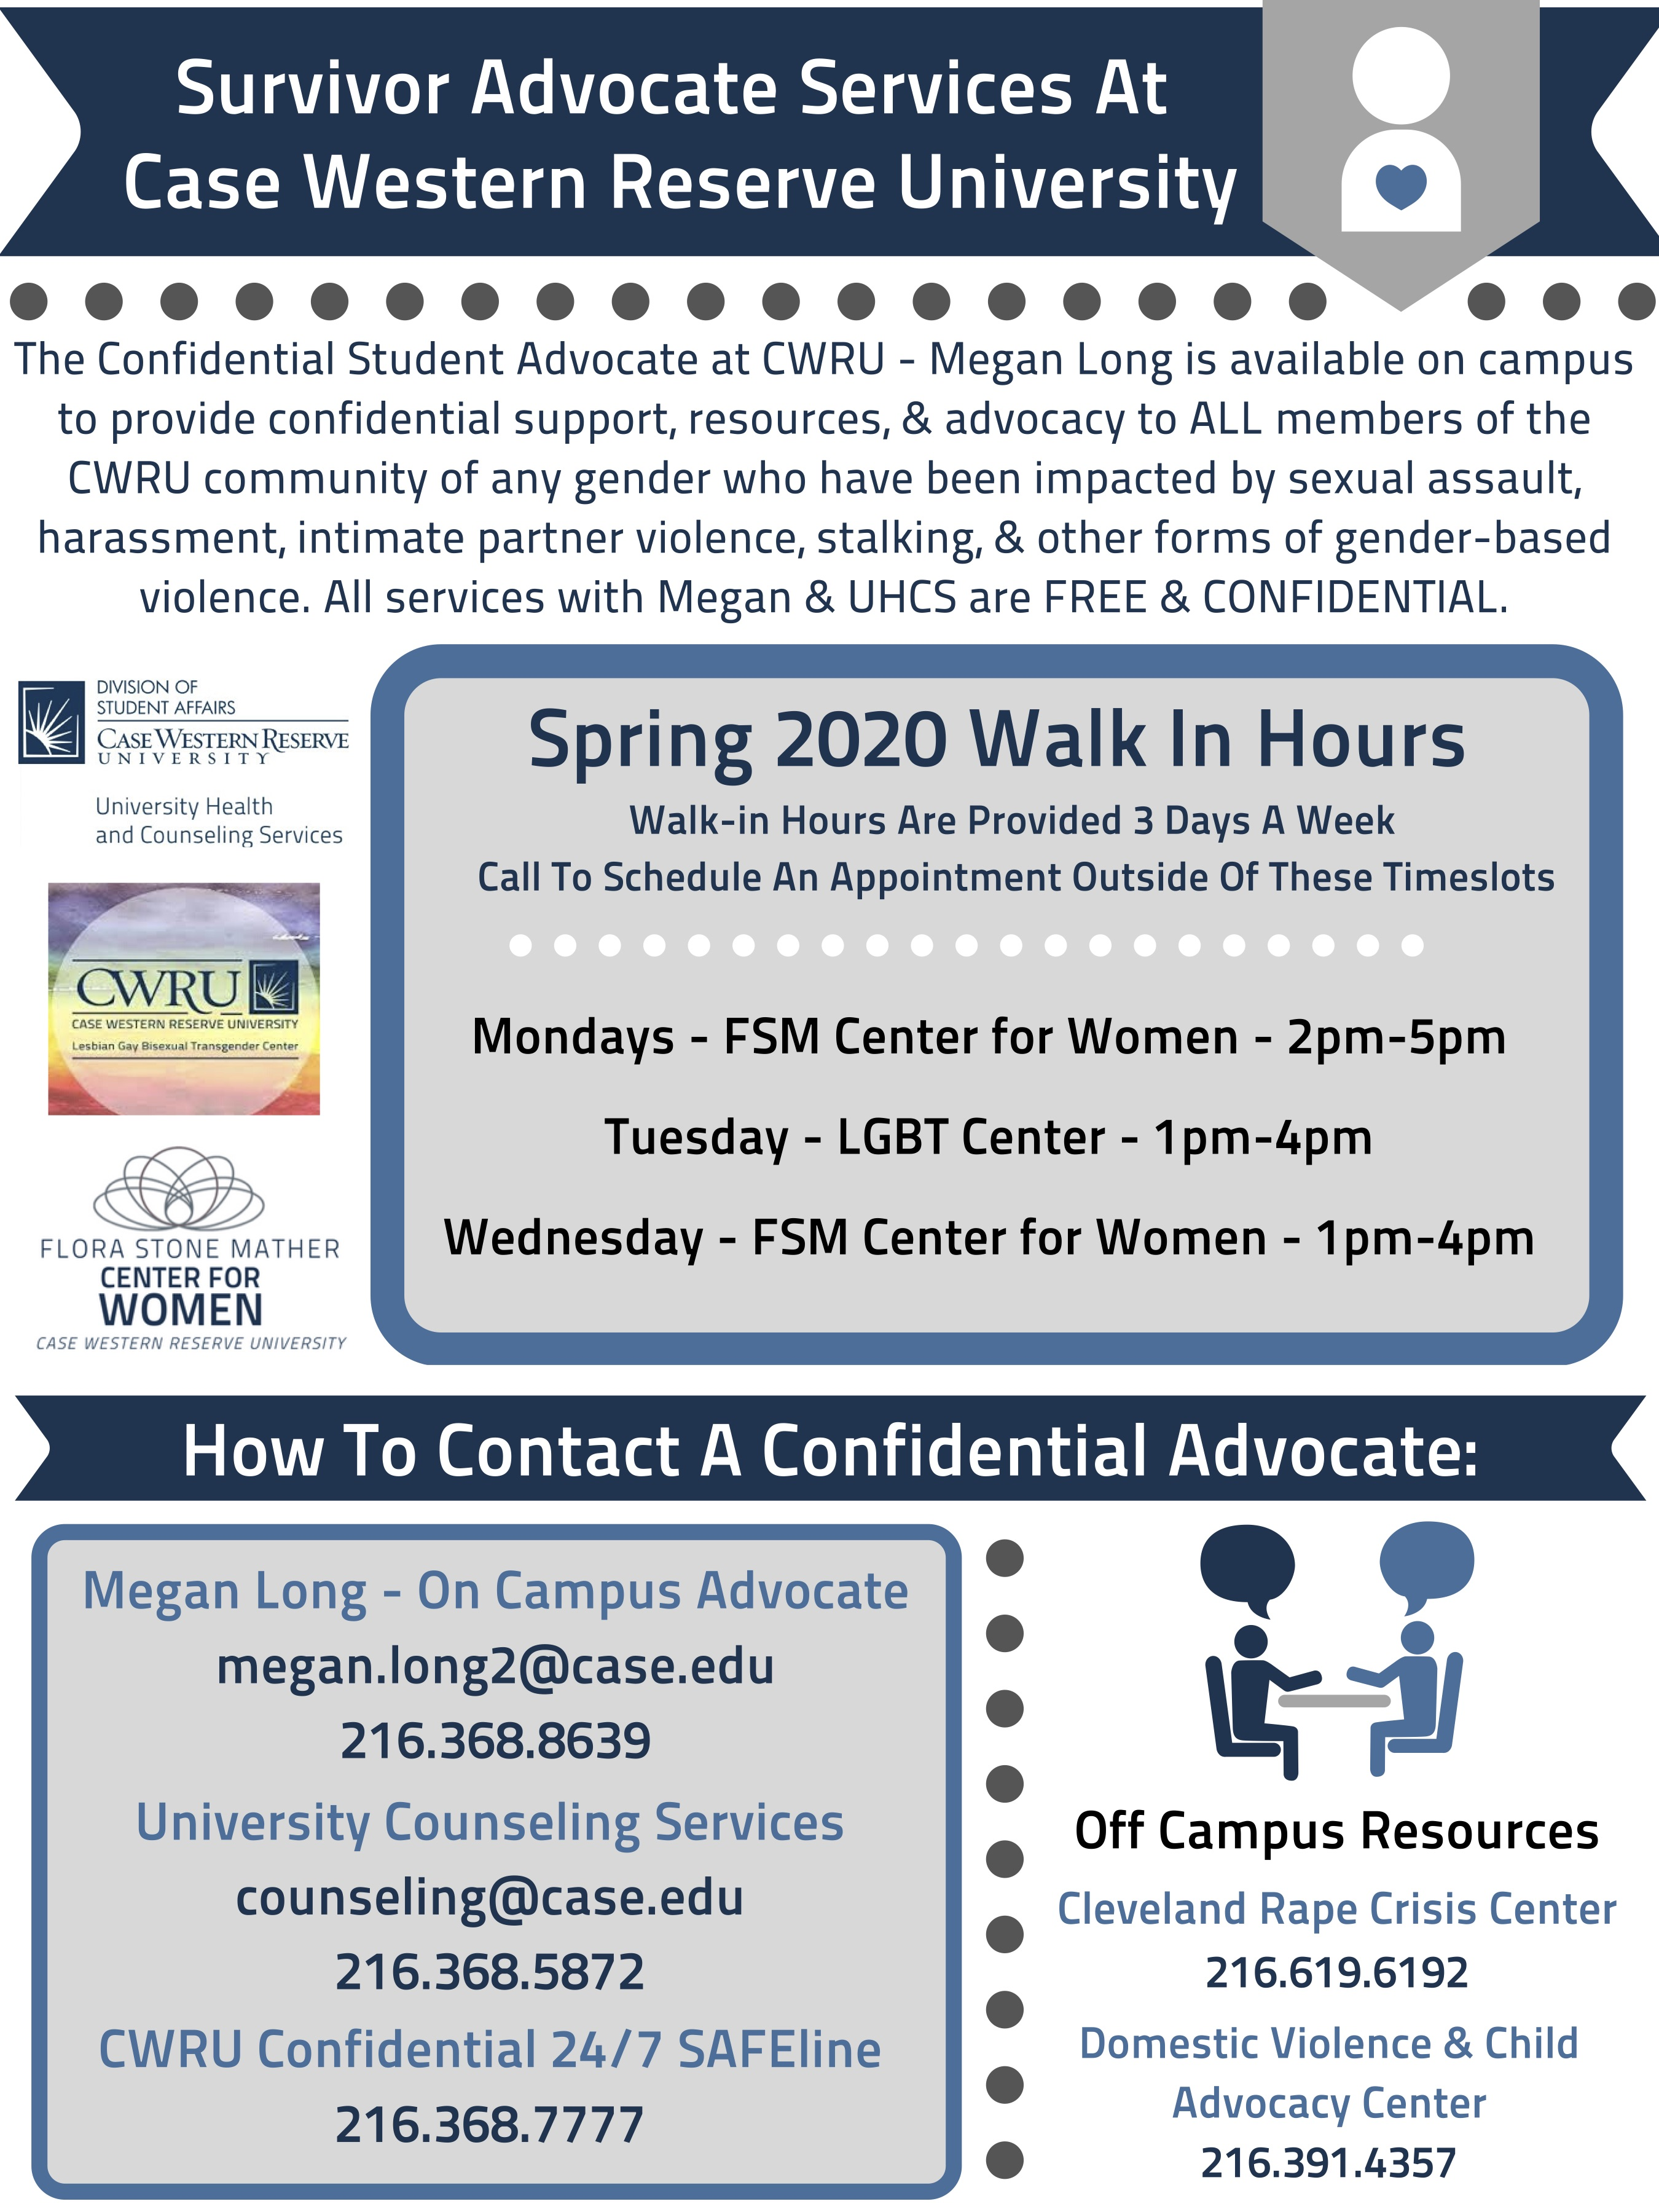 Survivor Advocate Services At Case Western Reserve University The Confidential Student Advocate at CWRU - Megan Long is available on campus to provide confidential support, resources, & advocacy to ALL members of the CWRU community of any gender who have been impacted by sexual assault, harassment, intimate partner violence, stalking, & other forms of gender-based violence. All services with Megan & UHCS are FREE & CONFIDENTIAL.  Spring 2020 Walk In Hours Walk-in Hours Are Provided 3 Days A Week  Call To Sc